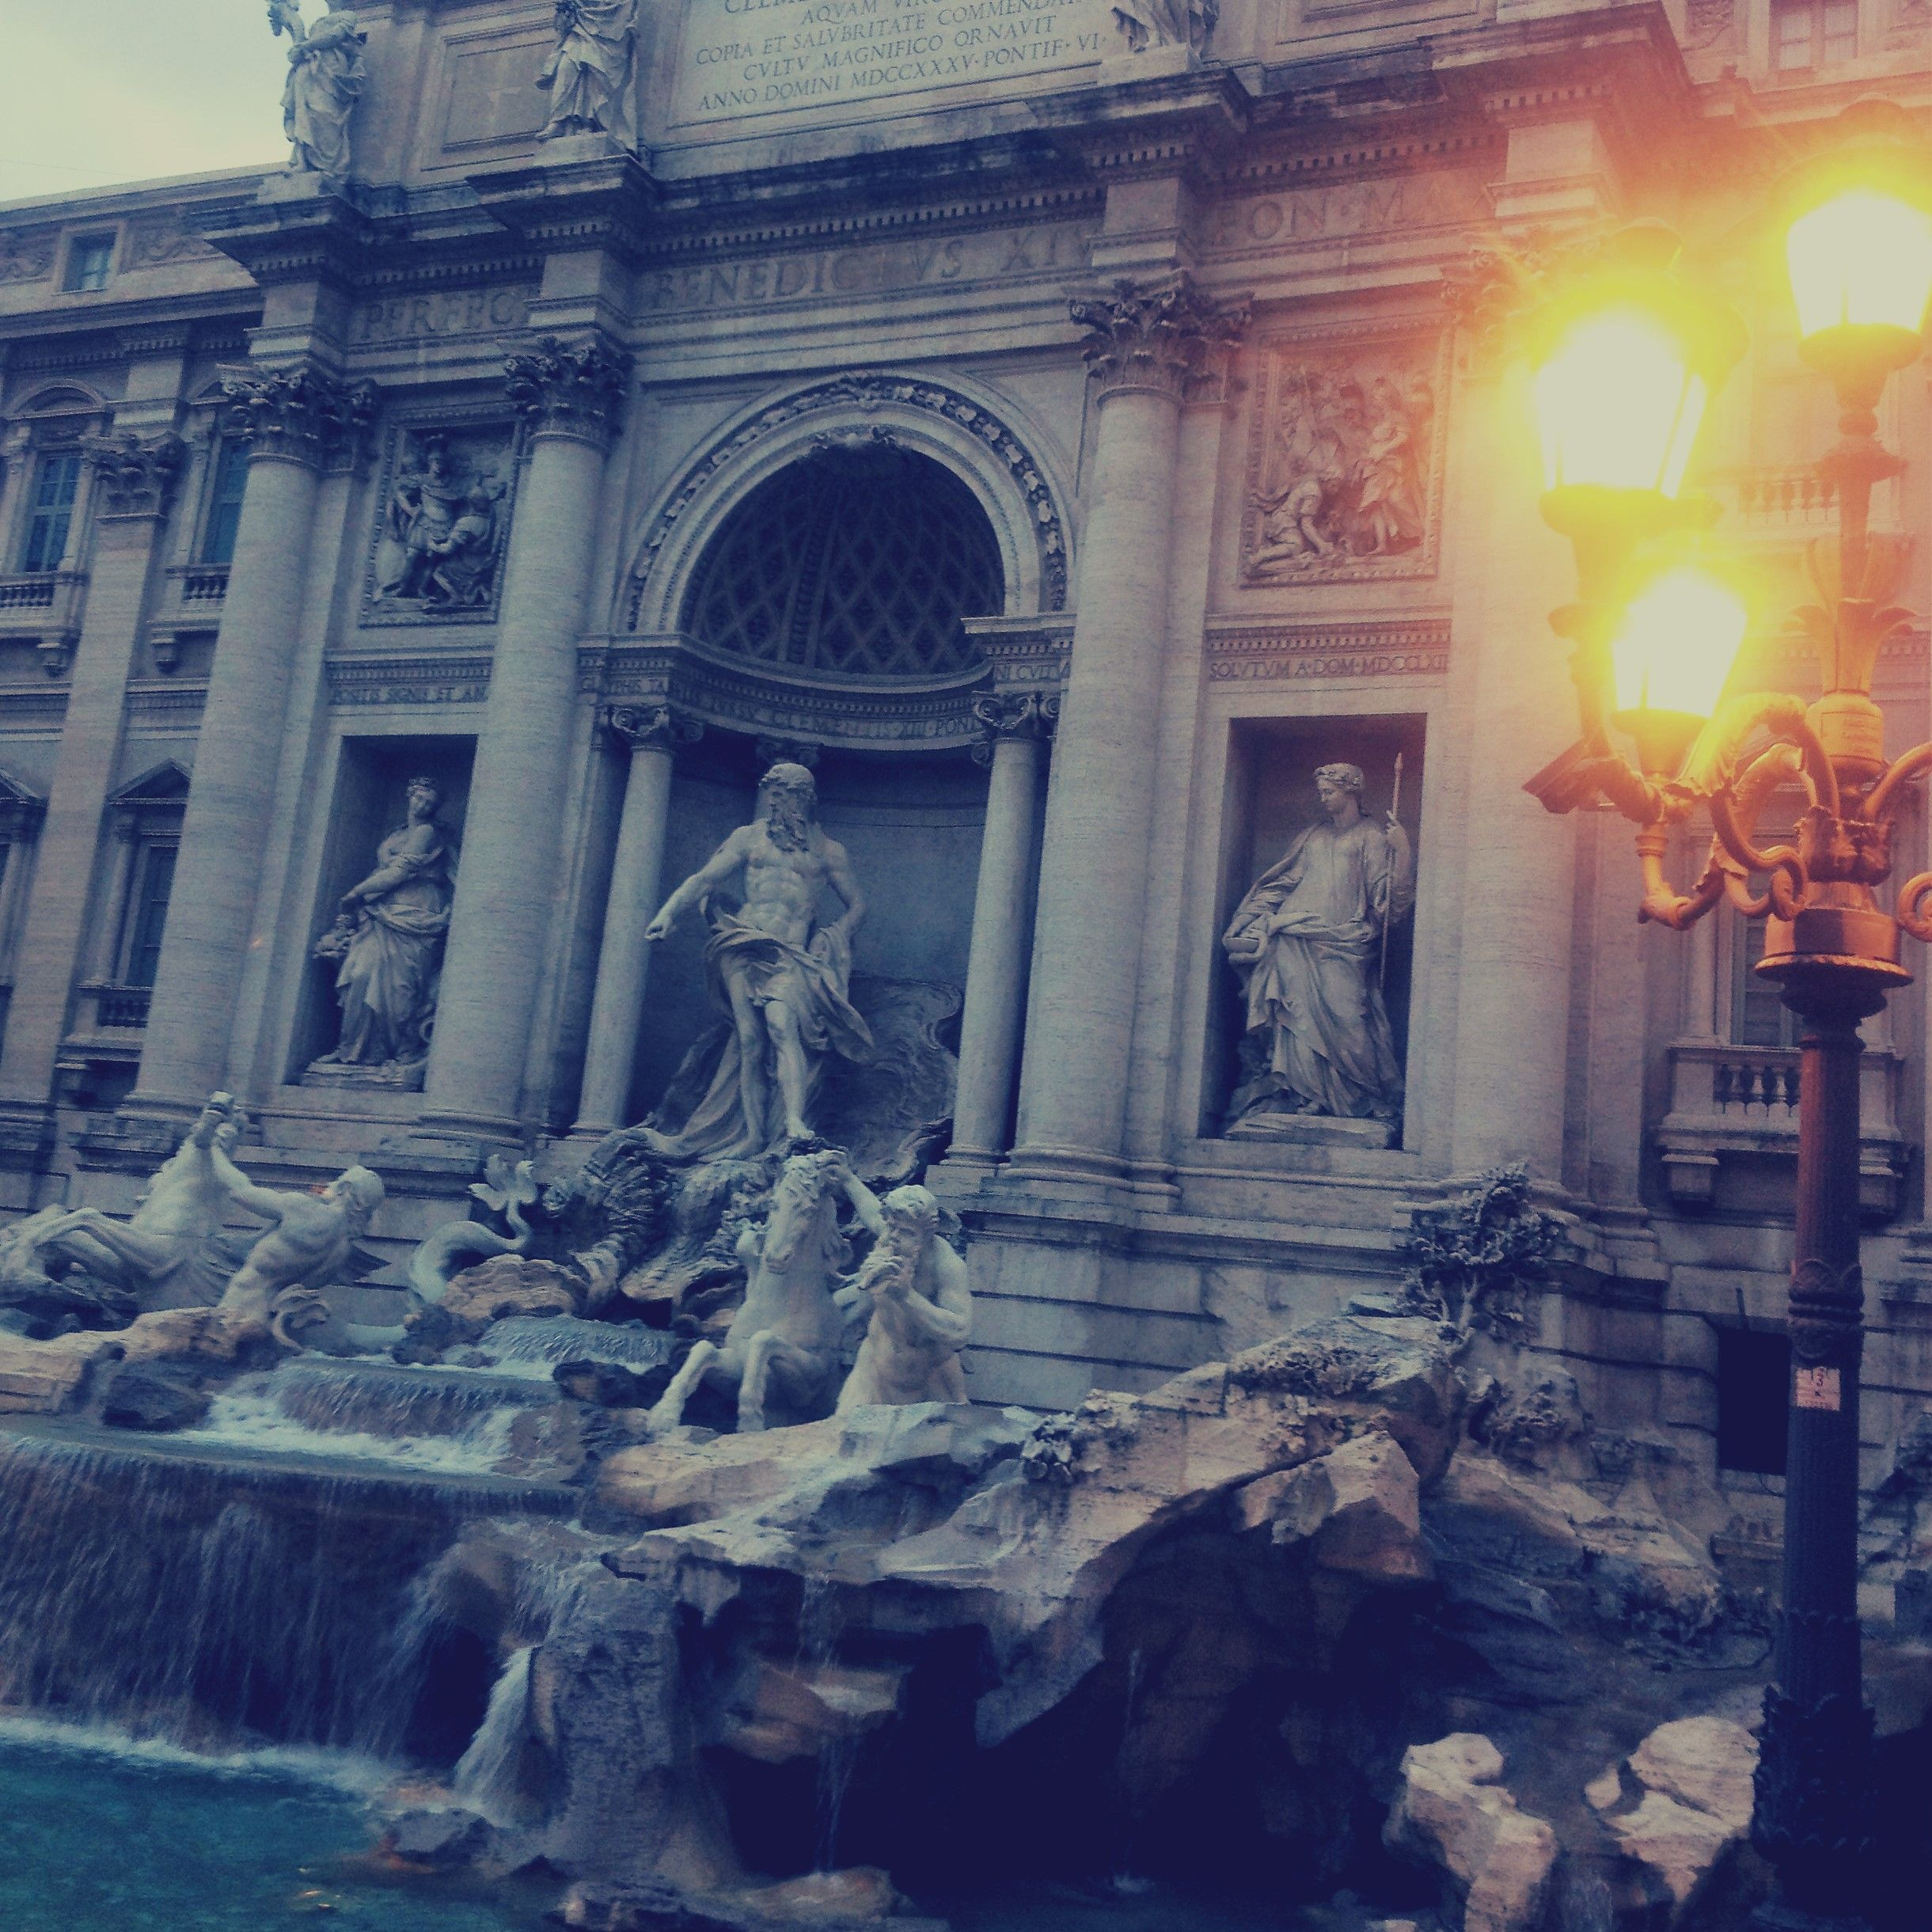 Rome Italy Europe Travel Wanderlust History Vintage Travel Explore Sightseeing Vacation Holiday taKotryna Trevi Fountain Piazza